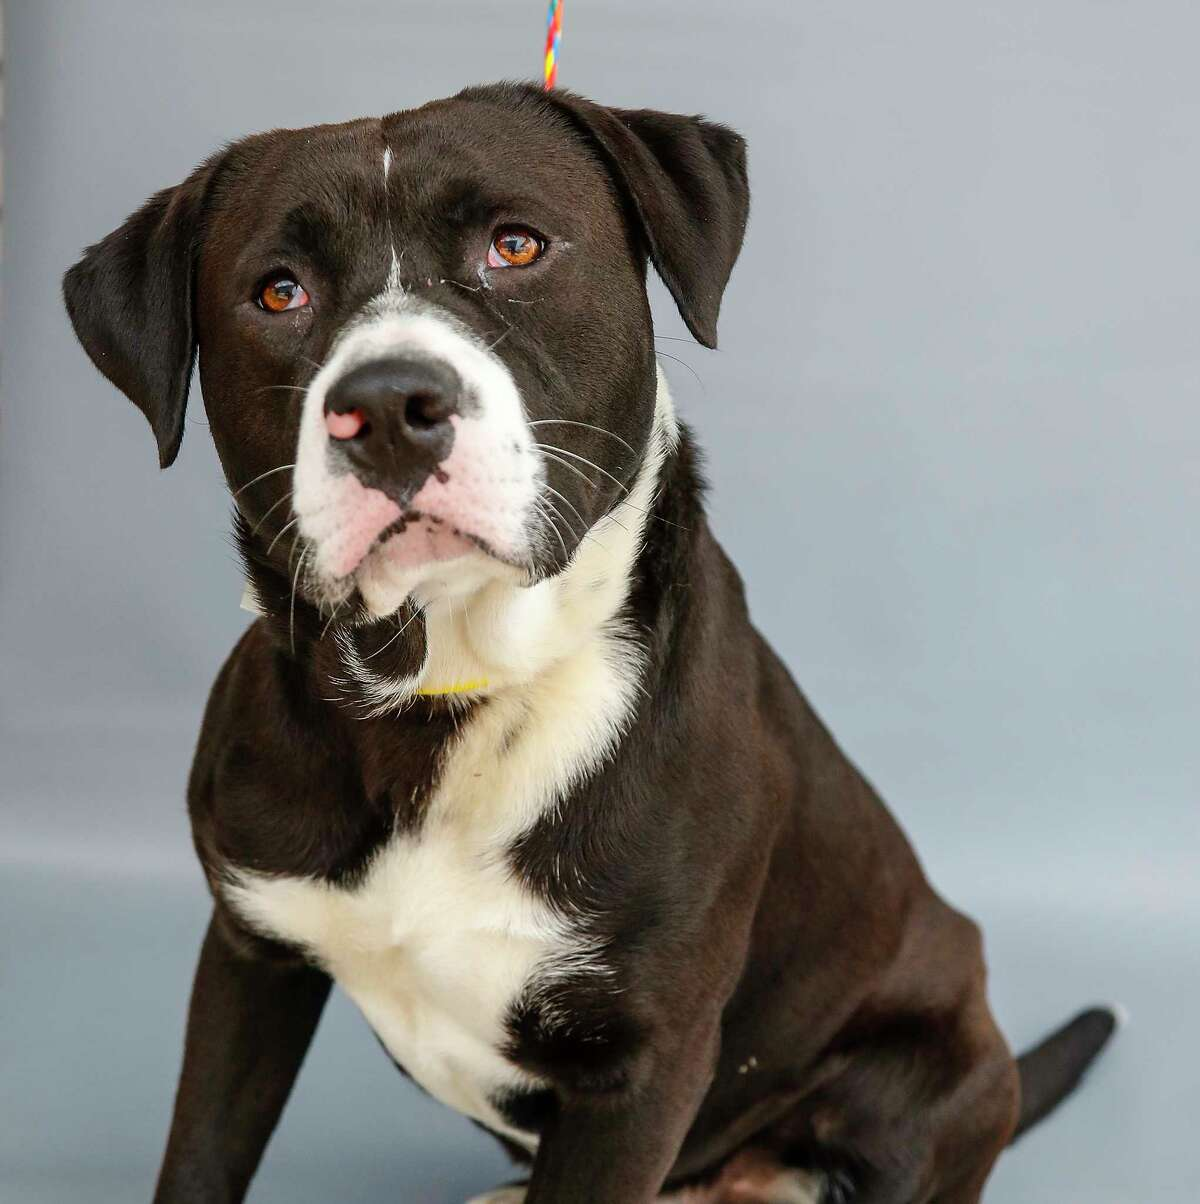 Marshall (A571035) is a 3-year-old, male American Pit Bull/Border Collie mix available for adoption from Harris County Pets. Photographed Wednesday, April 21, 2021, in Houston. Marshal was brought into the shelter as a stray nearly a month ago. He knows the command for